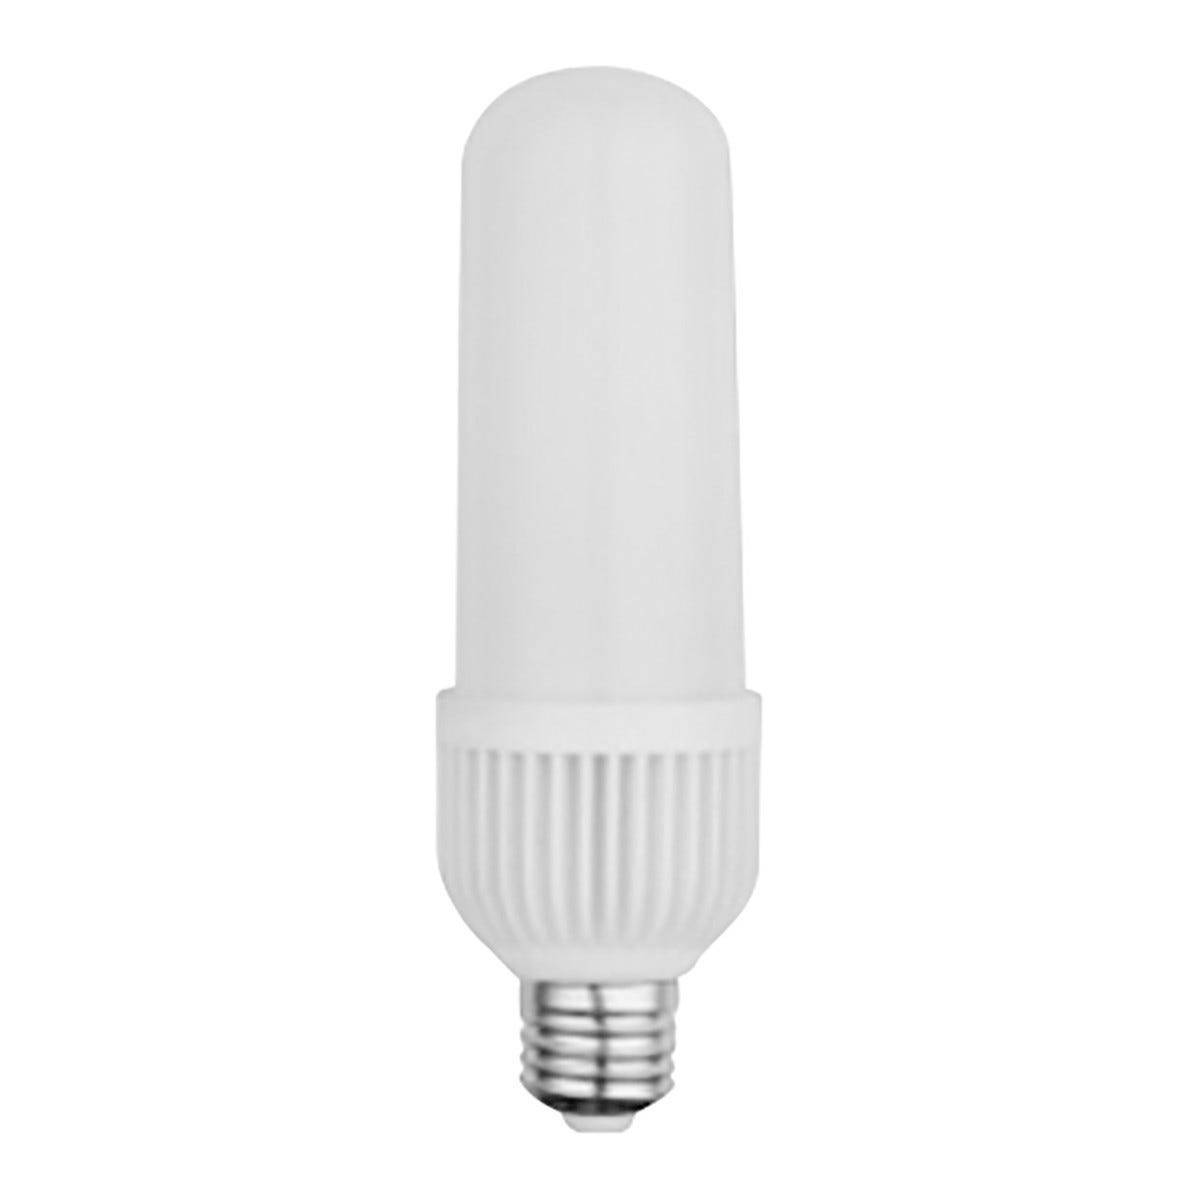 VIVIDA INTERNATIONAL Lampadina Vivida Led U-Shape E27 11w=67w 930 Lumen 3000k Luce Calda Dimensioni Ø43x160 Mm